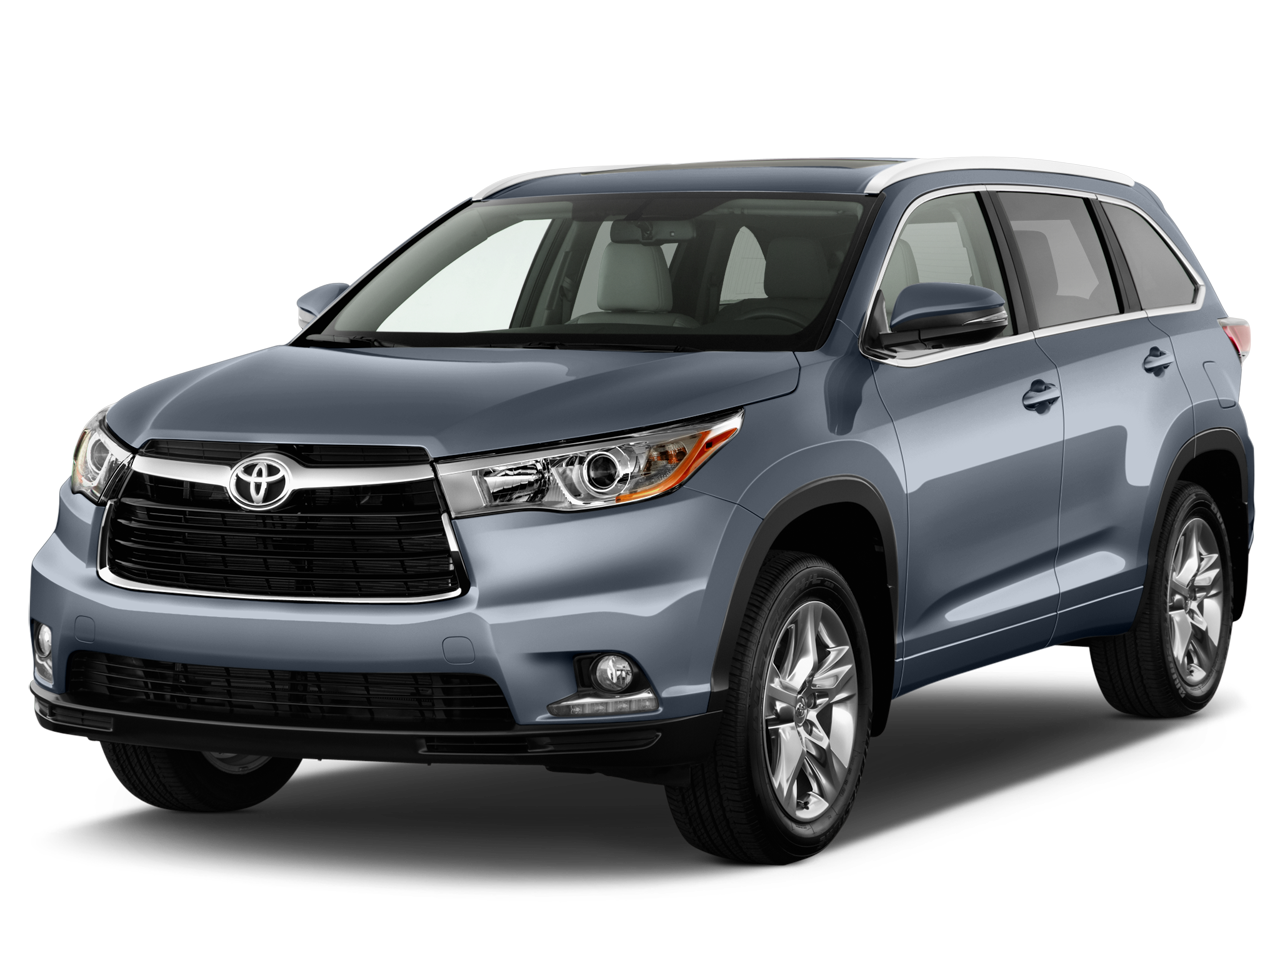 new 2016 toyota highlander limited near kennewick wa toyota of tri cities. Black Bedroom Furniture Sets. Home Design Ideas